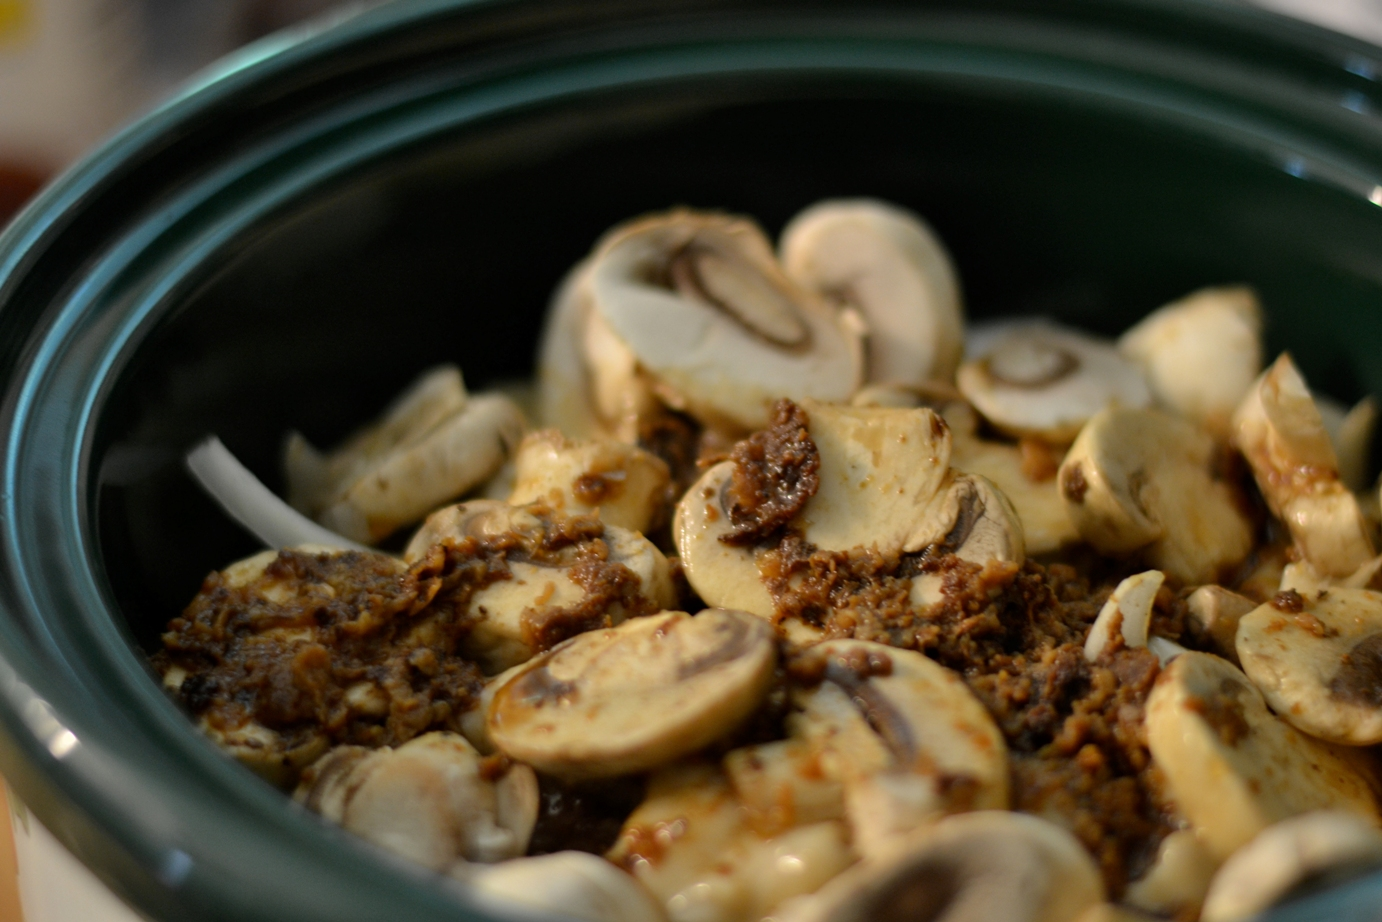 Crockpot Cube Steak This Recipe Will Make Your House Smell Sooo Good All Day